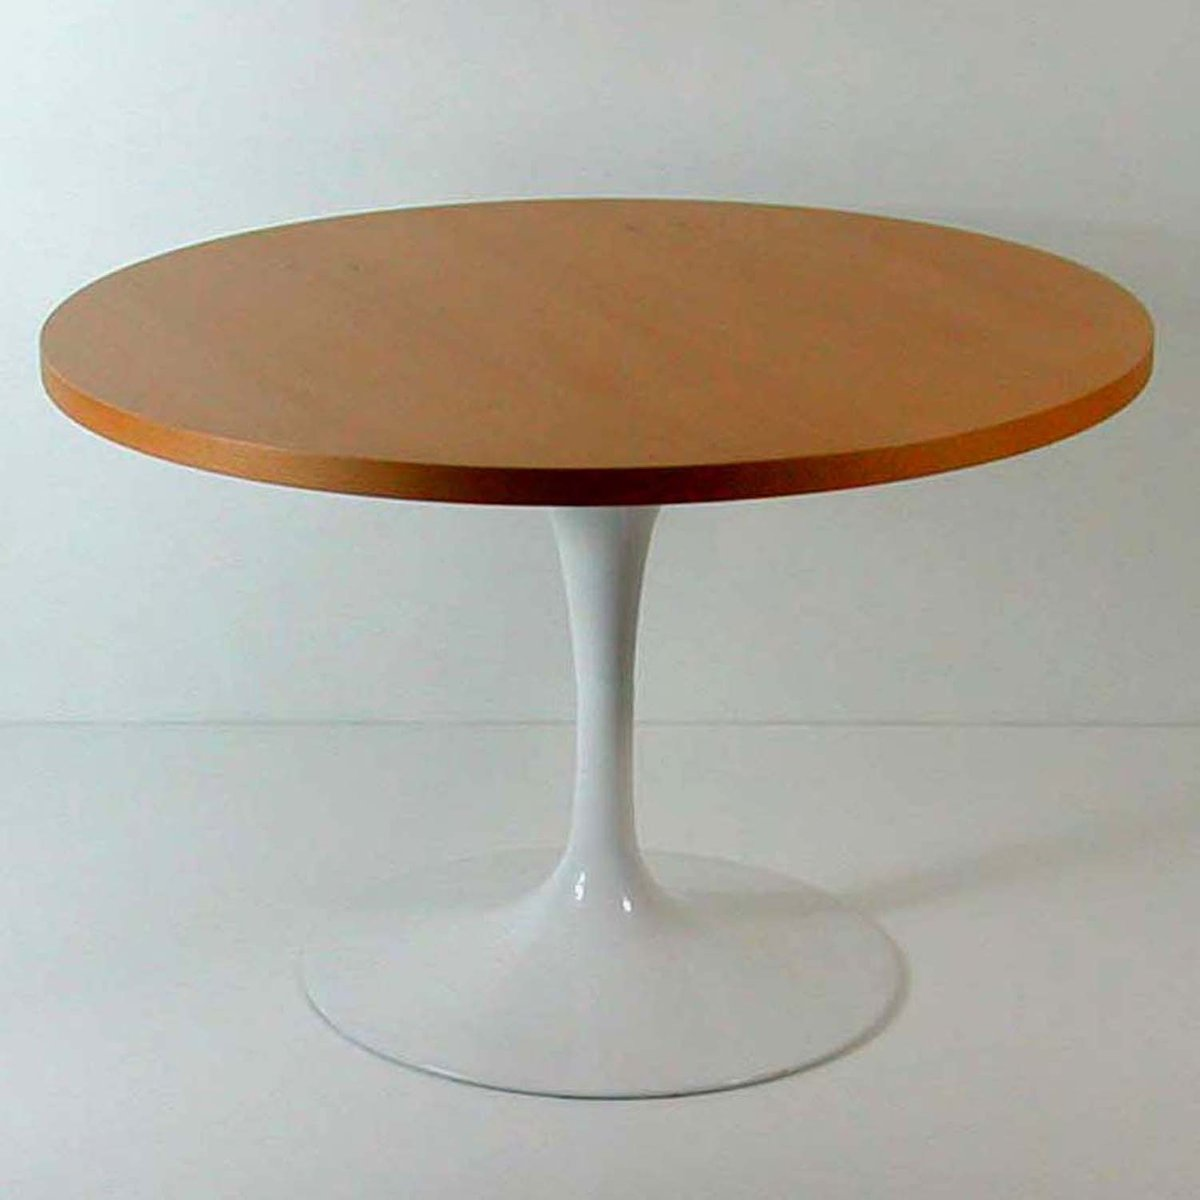 Table Knoll Tulipe Tavolo Saarinen Knoll Cheap Eero Saarinen Table Attractive Tulip